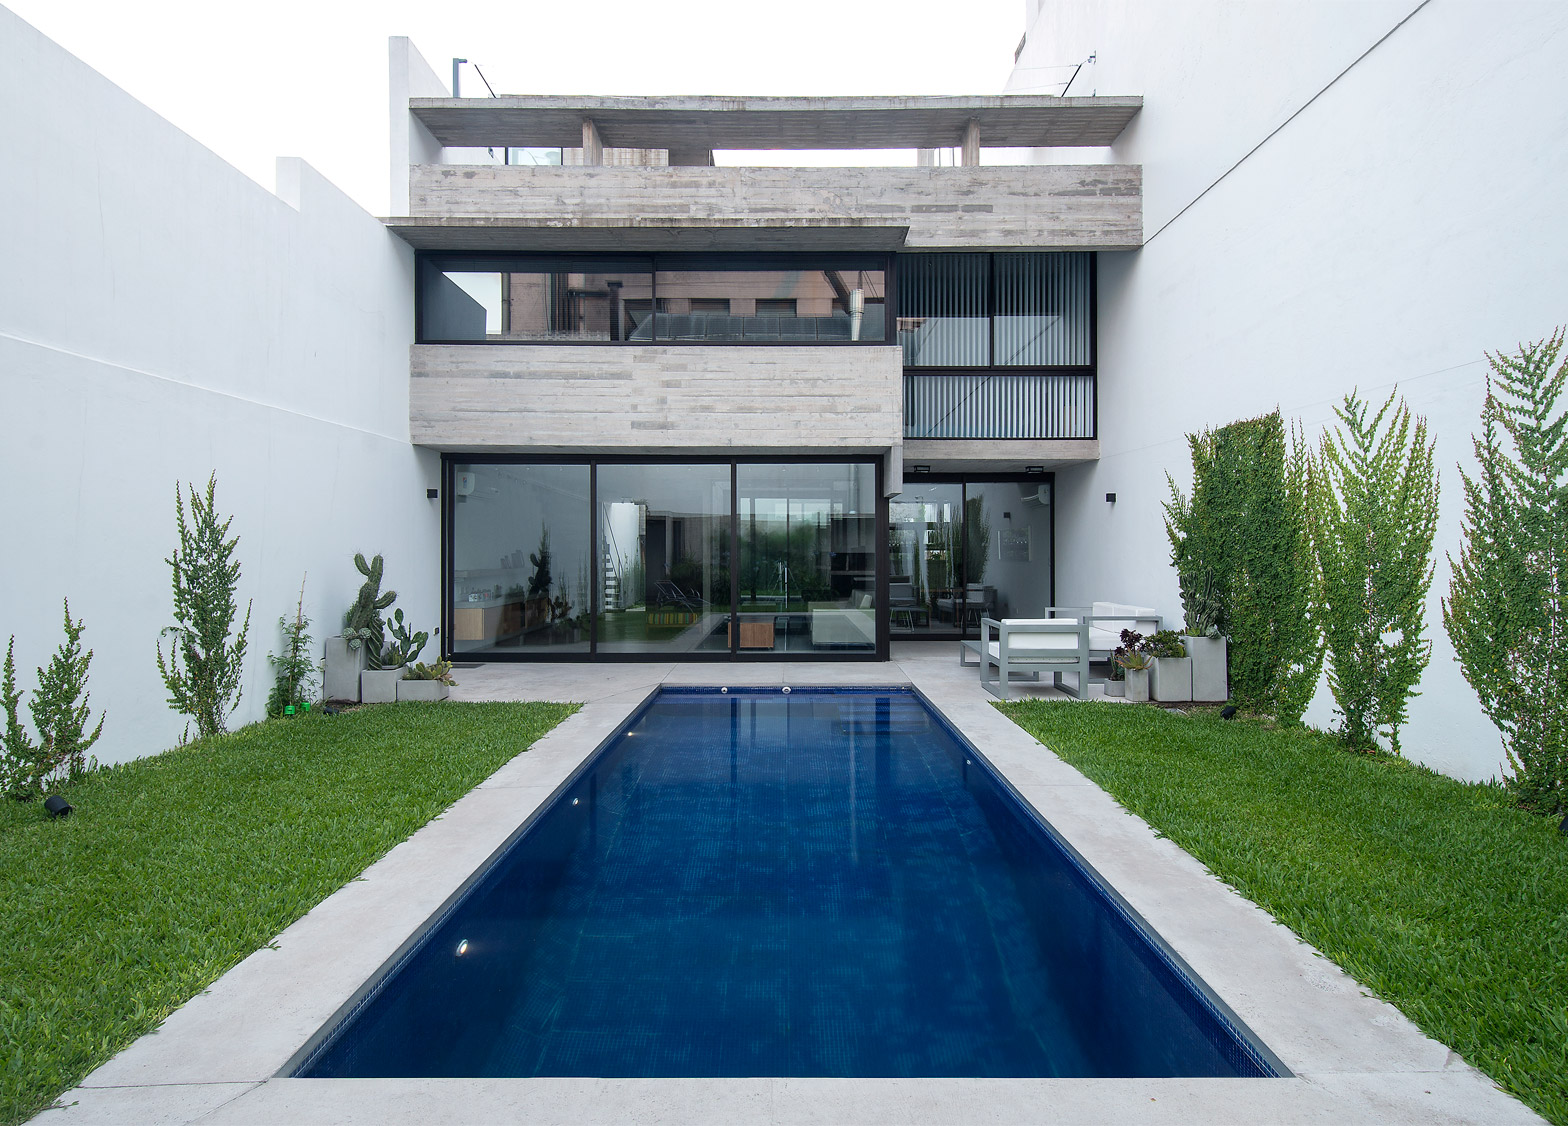 Two Houses Conesa by Luciano Kruk